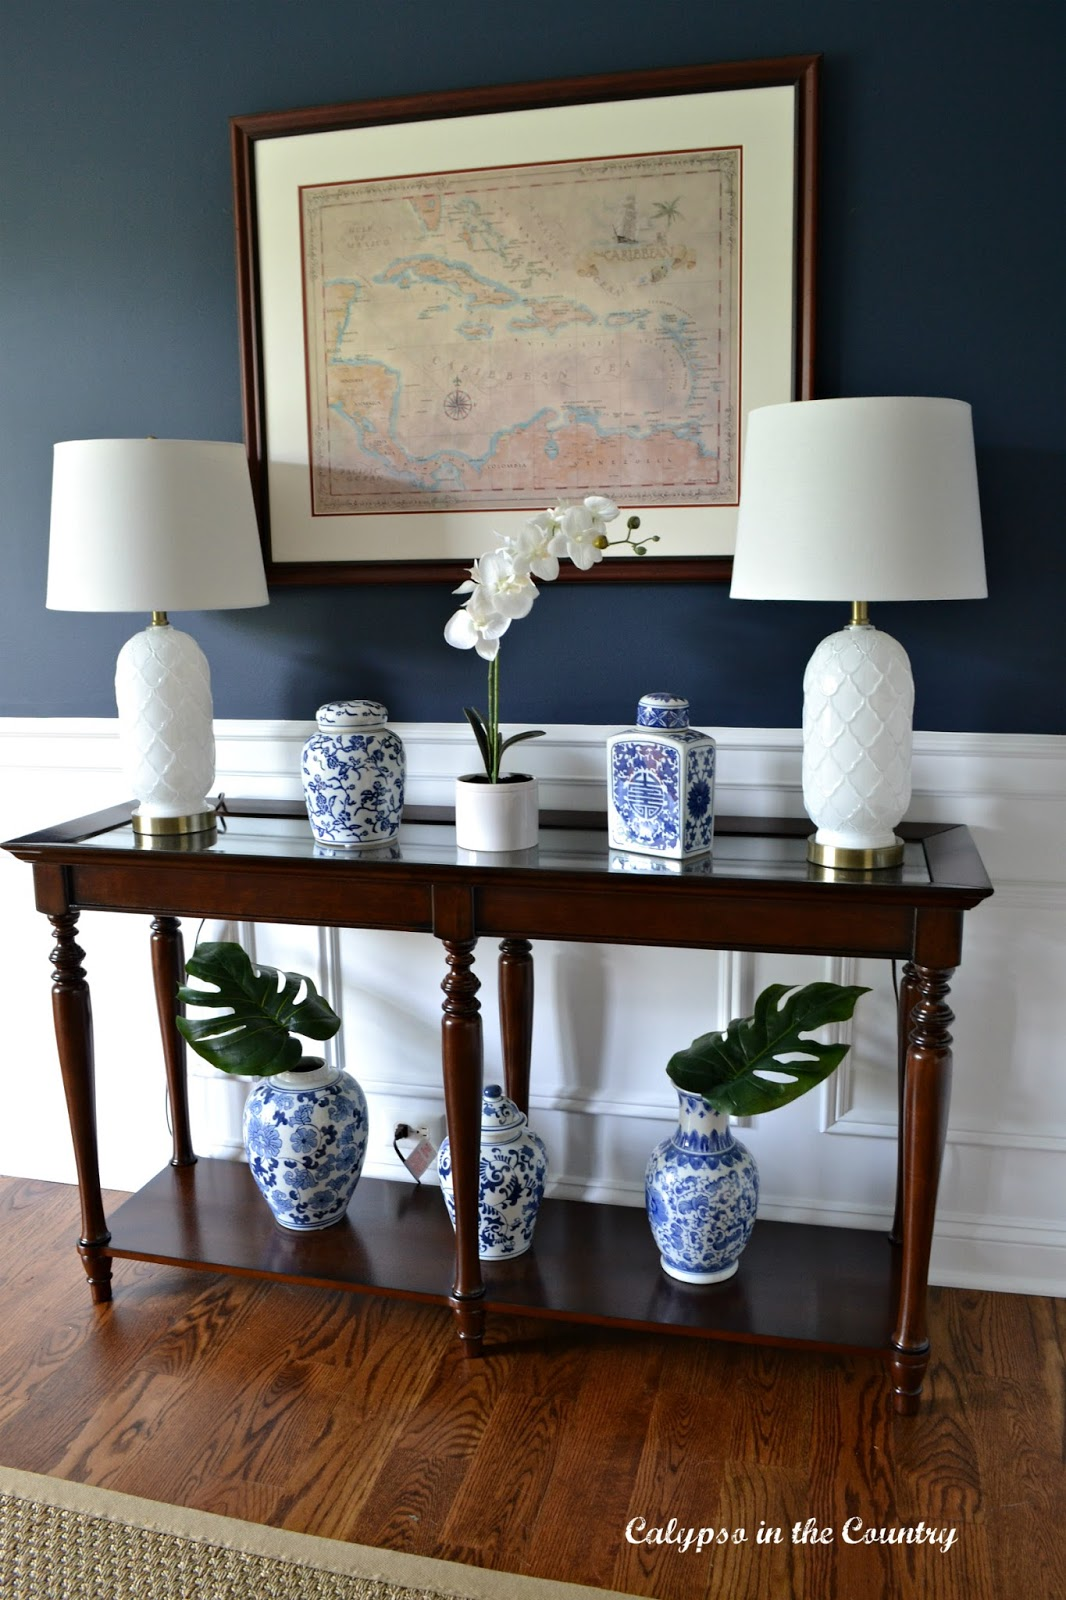 Caribbean Map and Cherry Console Table